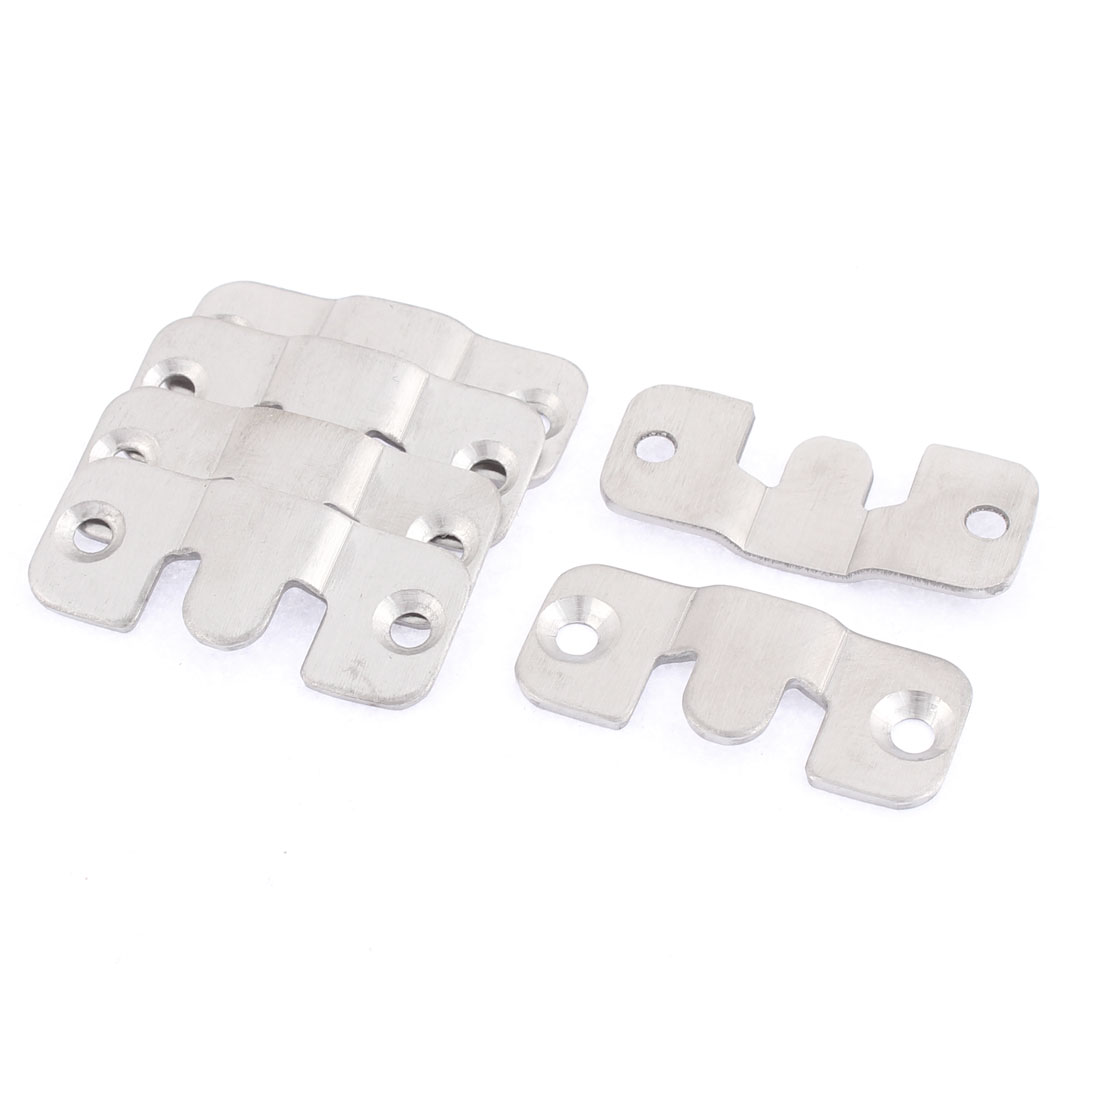 Furniture Photo Frame Stainless Steel Interlock Bracket Joint Connector Hook 6 Pcs